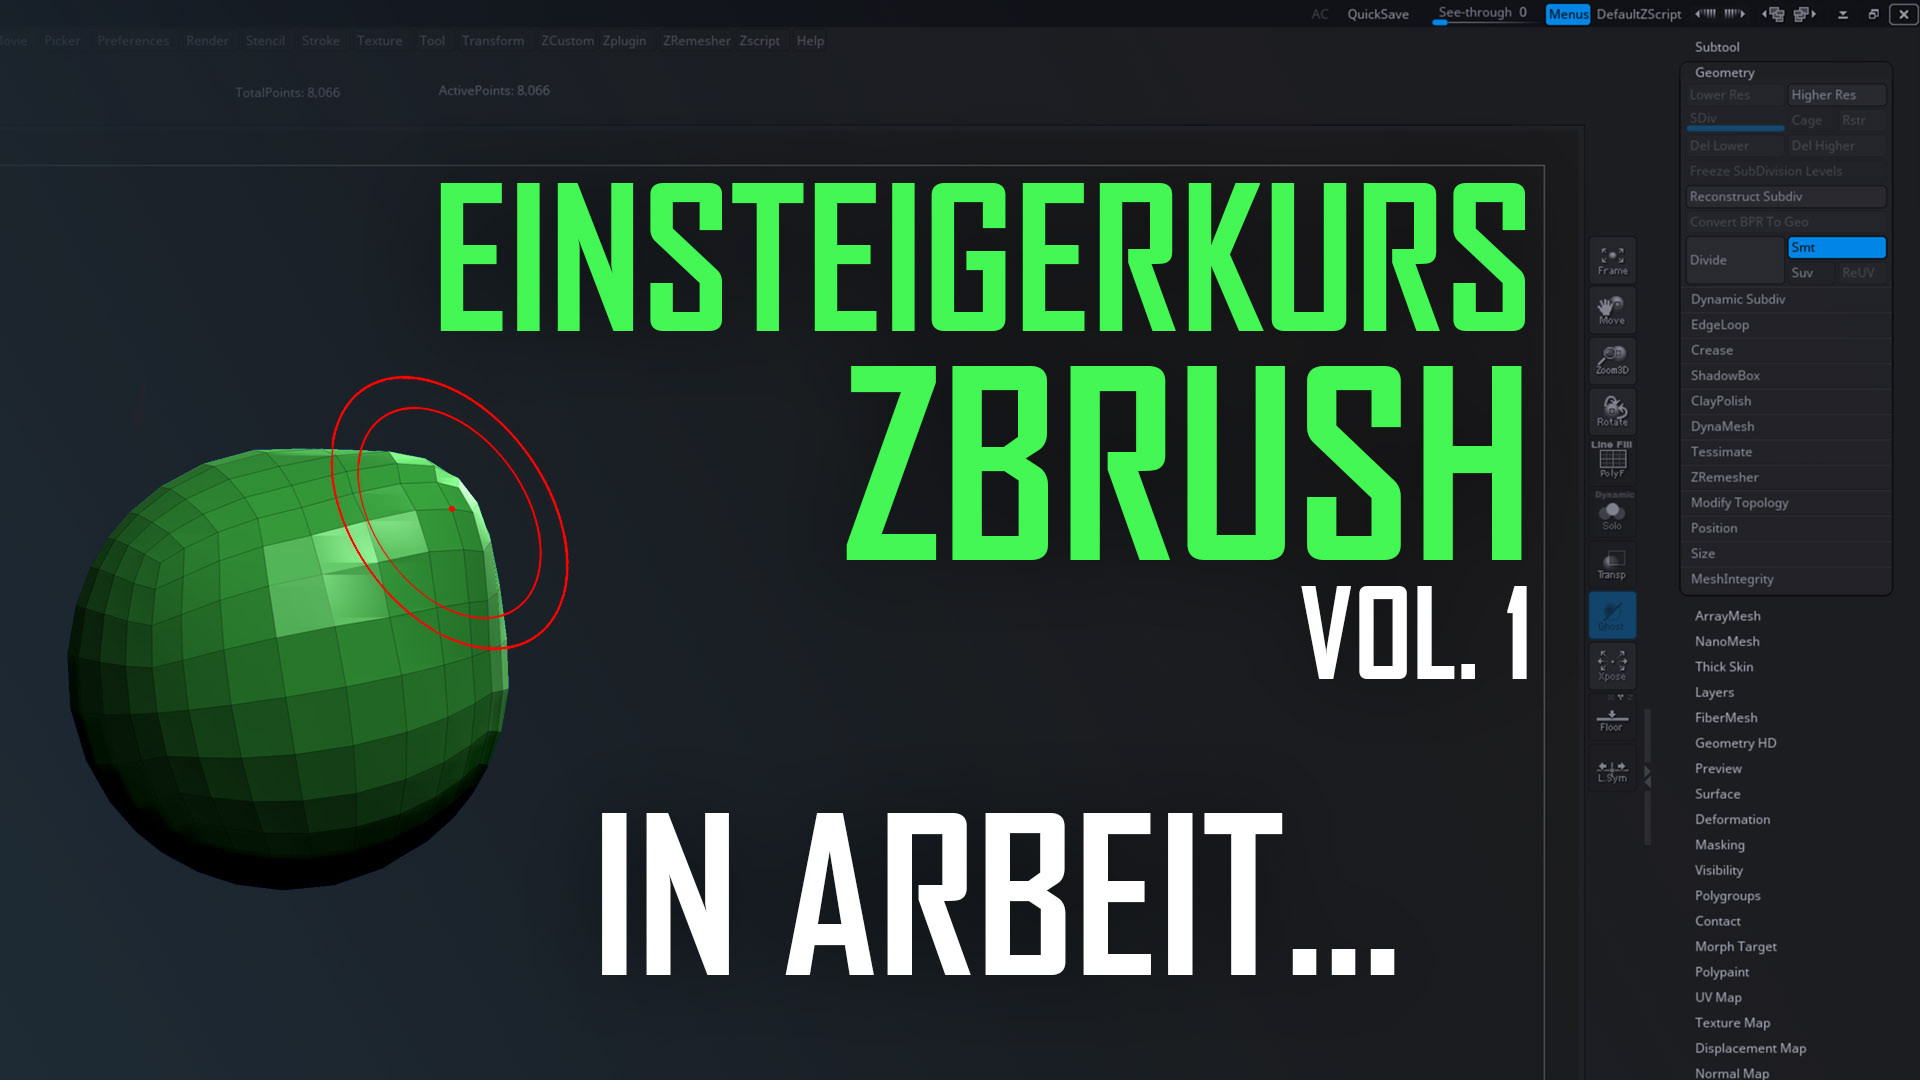 Einsteigerkurs_Vol1_Preview.jpg